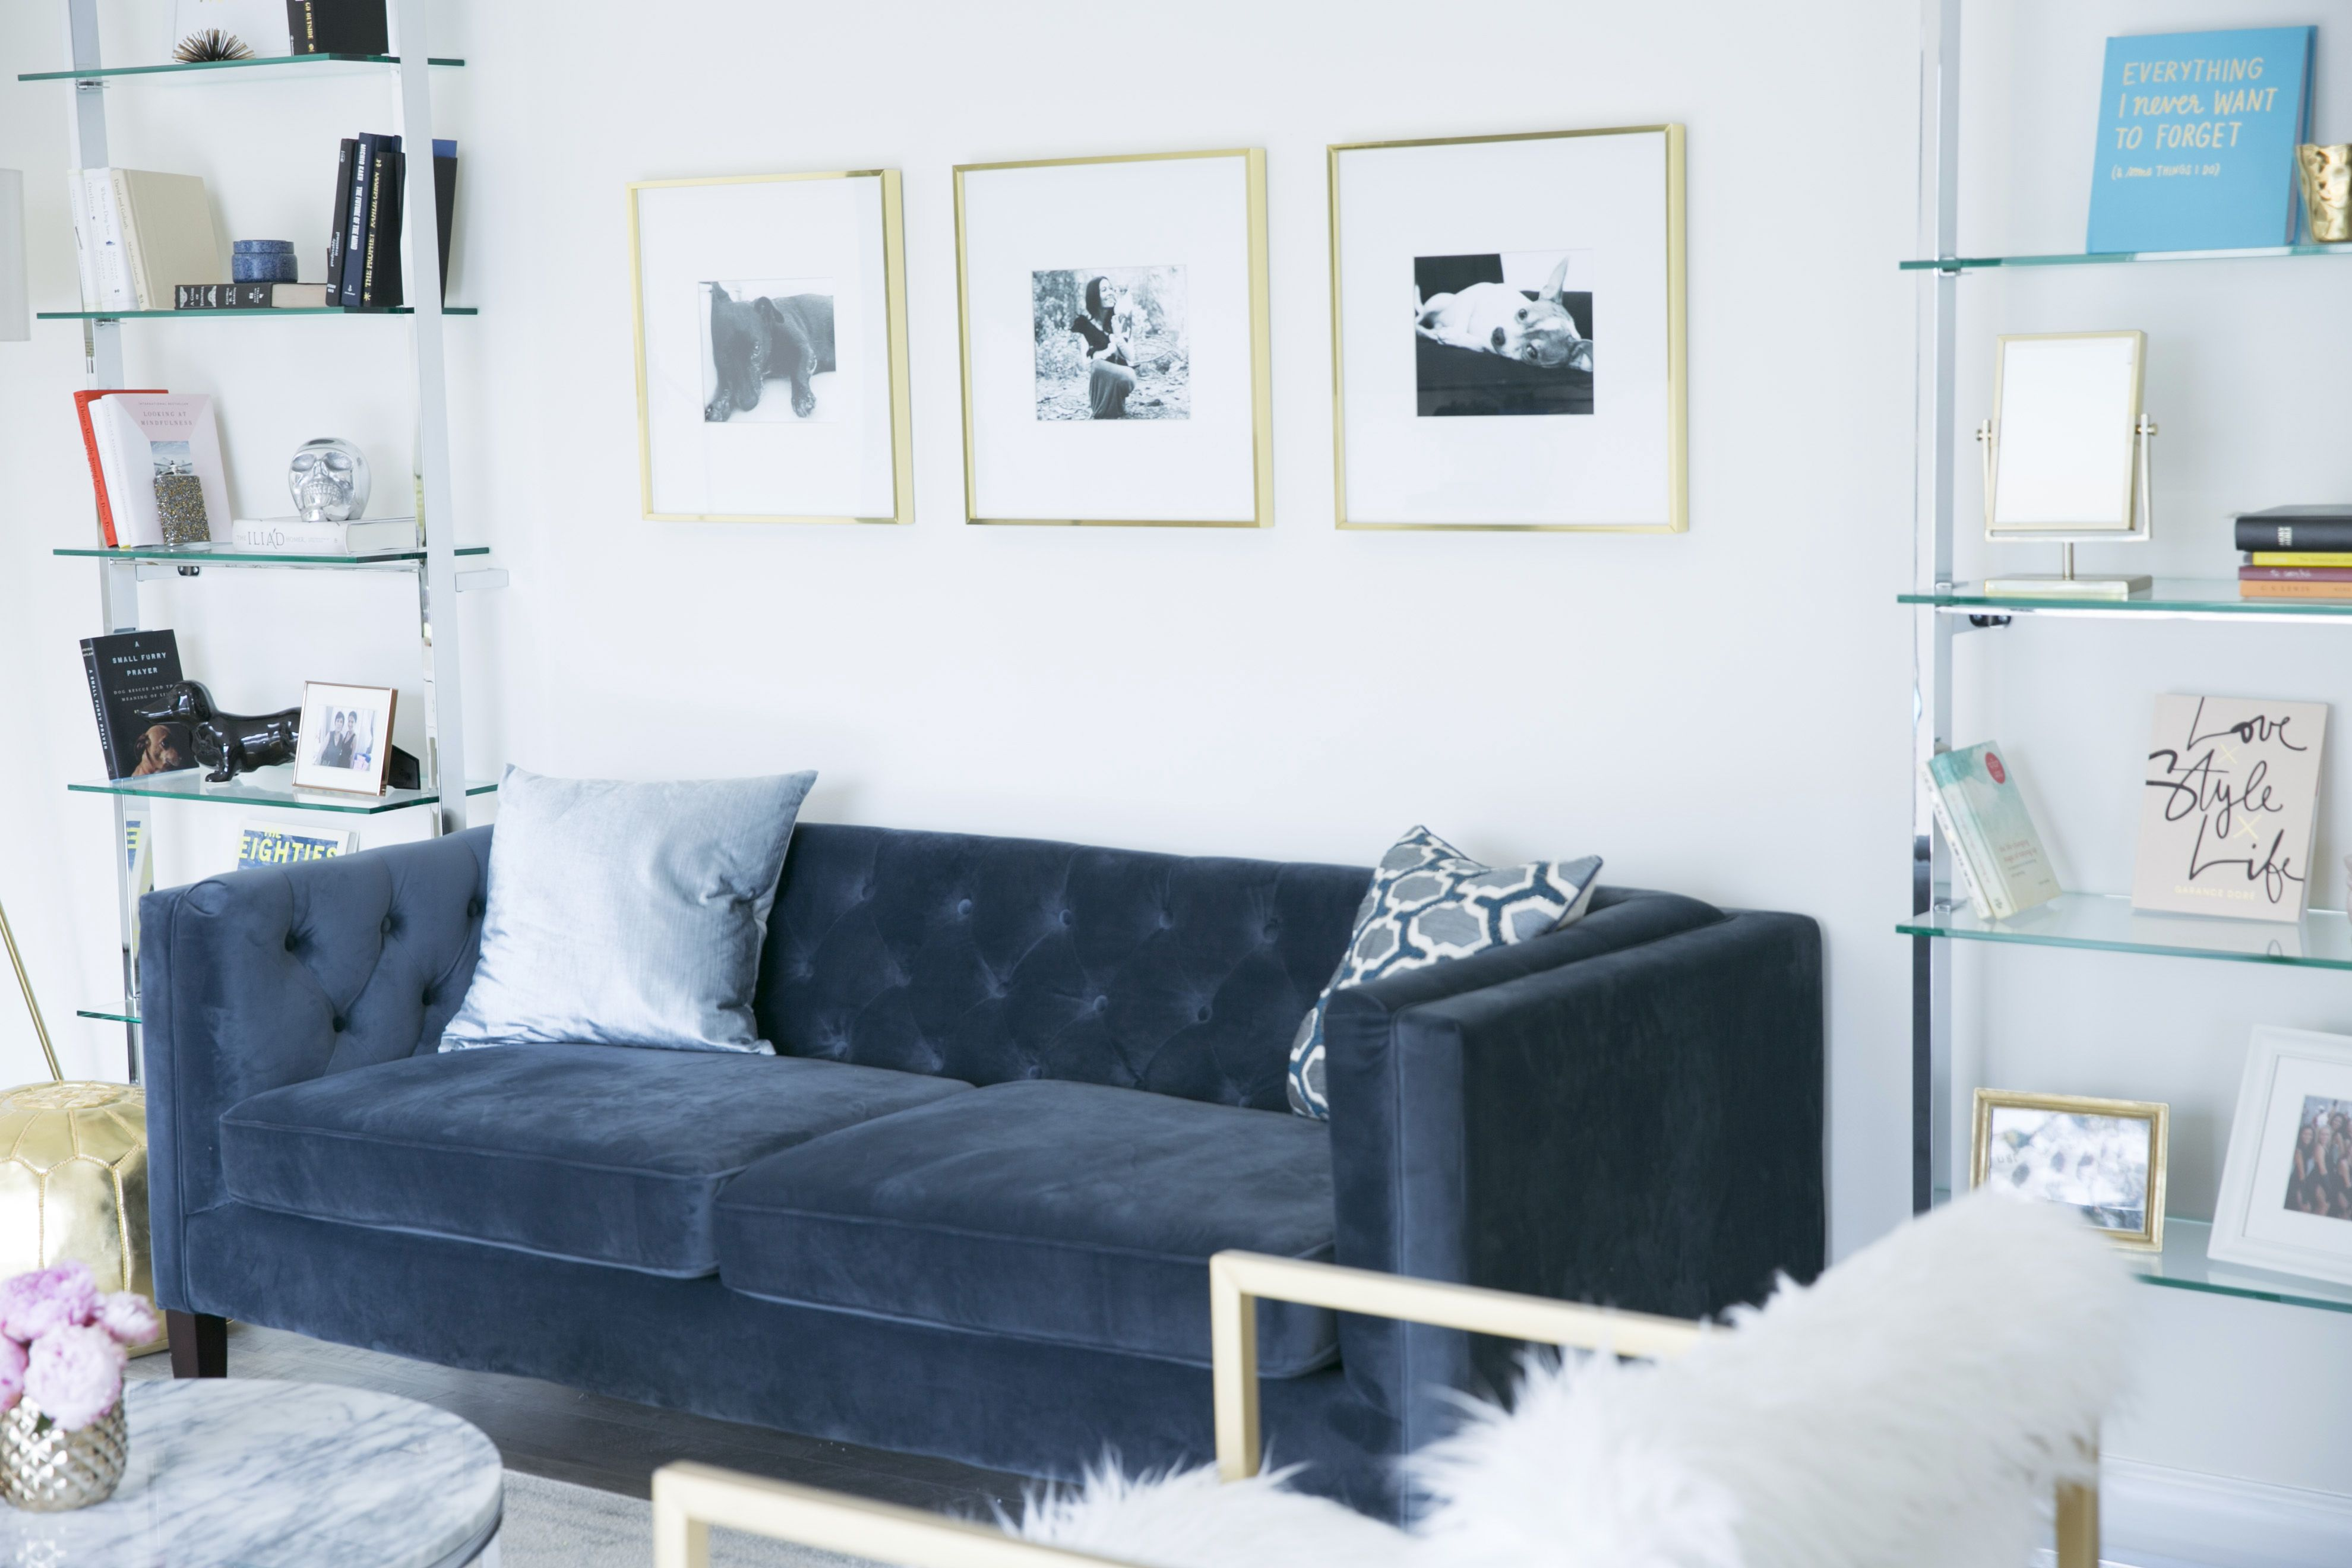 J5A0956 Decor Pinterest New houses Room tour and Houses